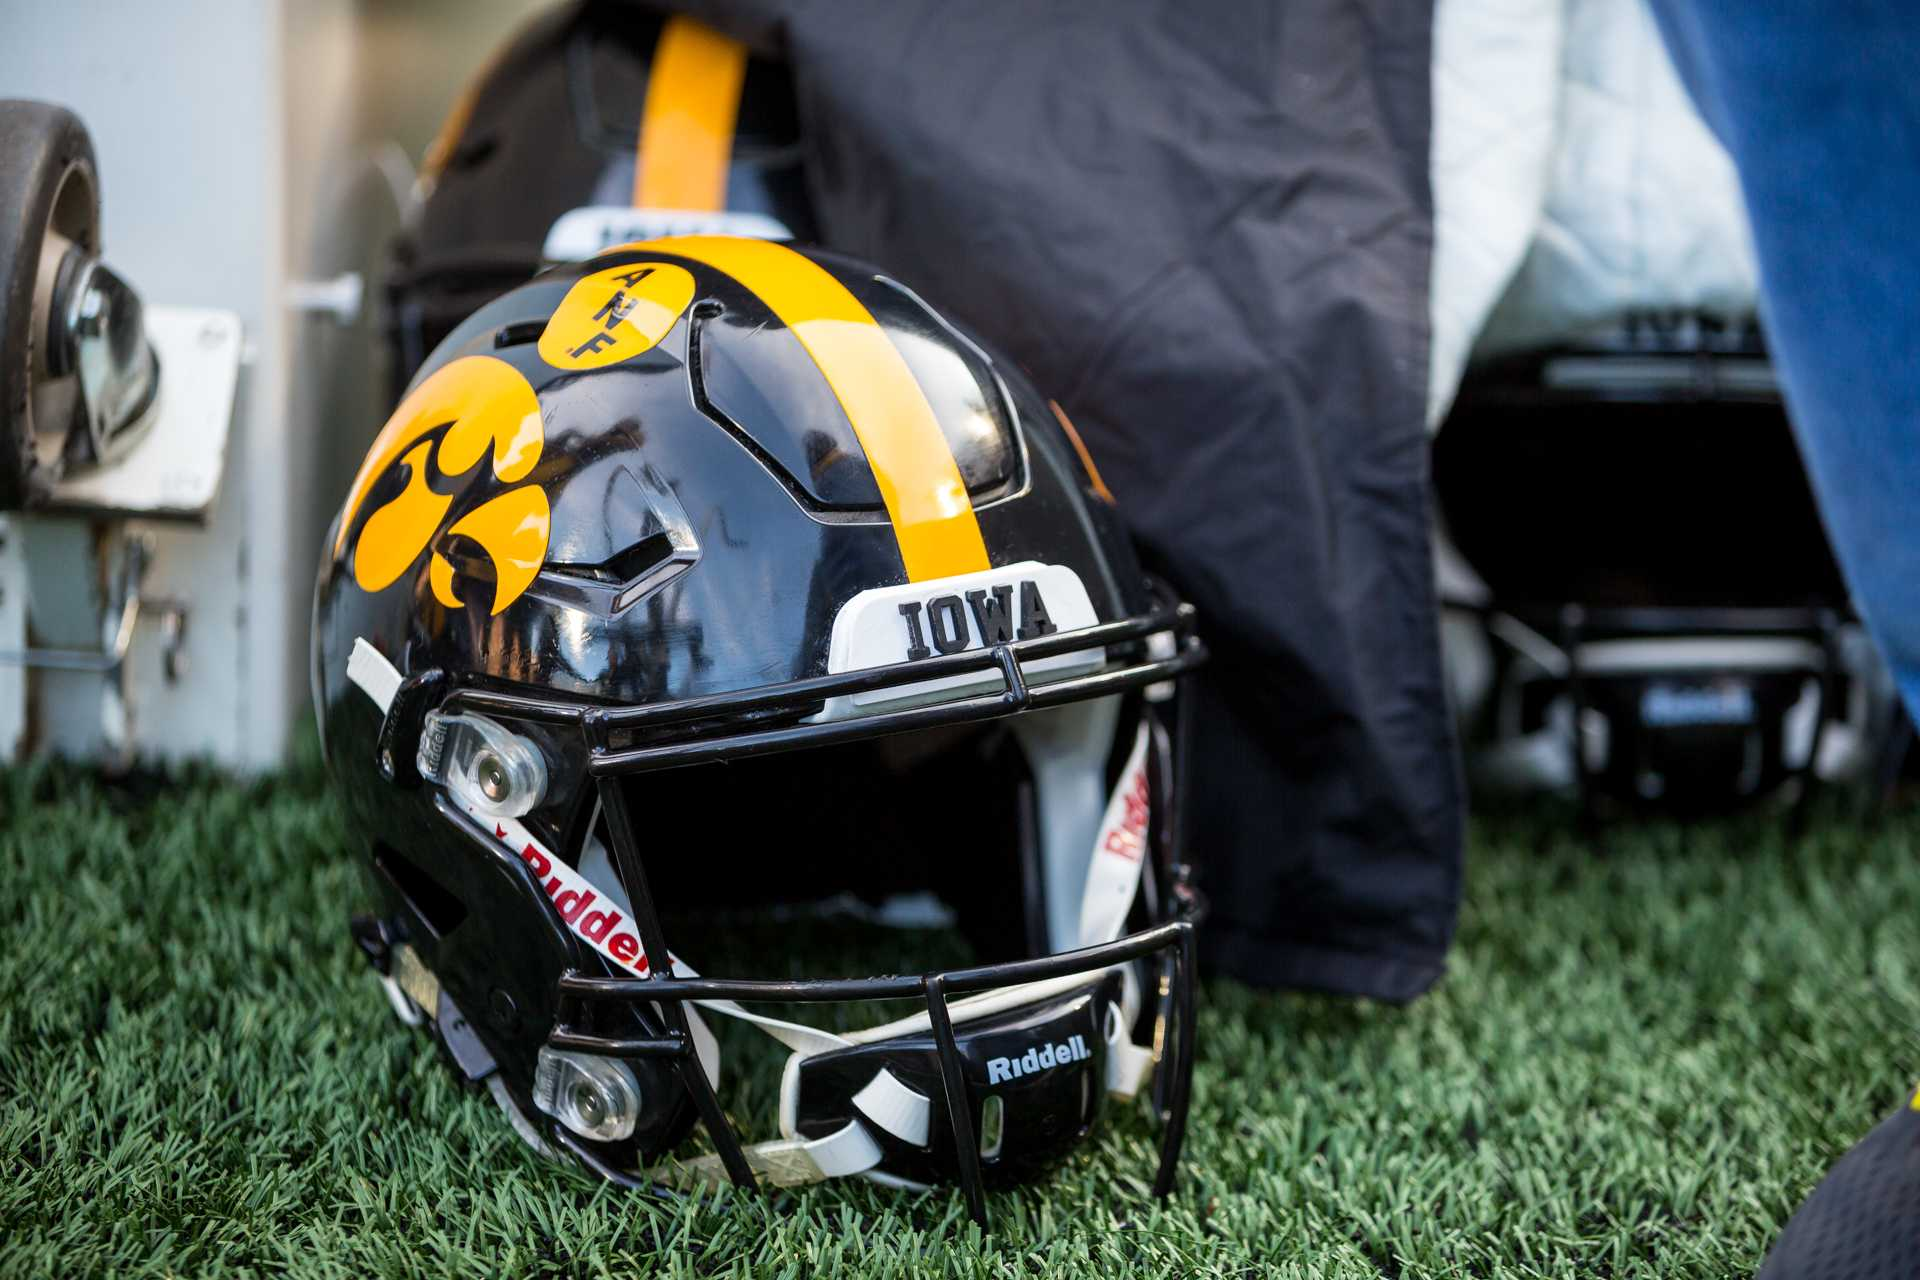 An Iowa football helmet on the sideline during a game against Purdue University on Saturday, Nov. 18, 2017. The Boilermakers defeated the Hawkeyes 24 to 15. (David Harmantas/The Daily Iowan)